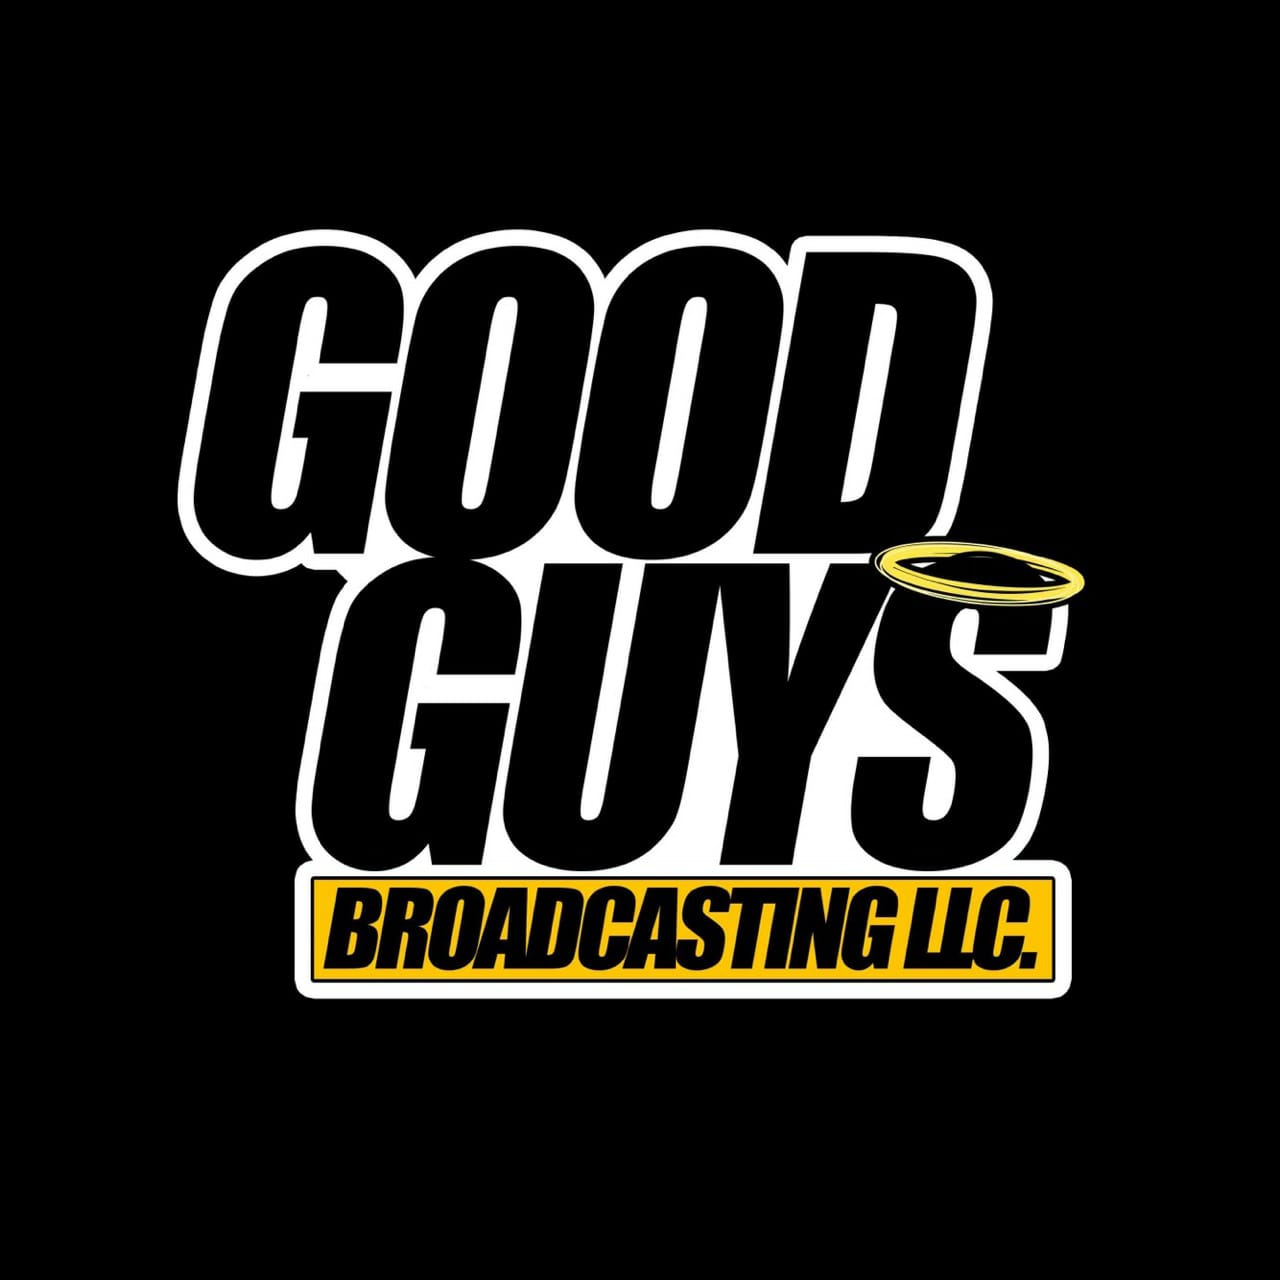 good guys logo.jpeg